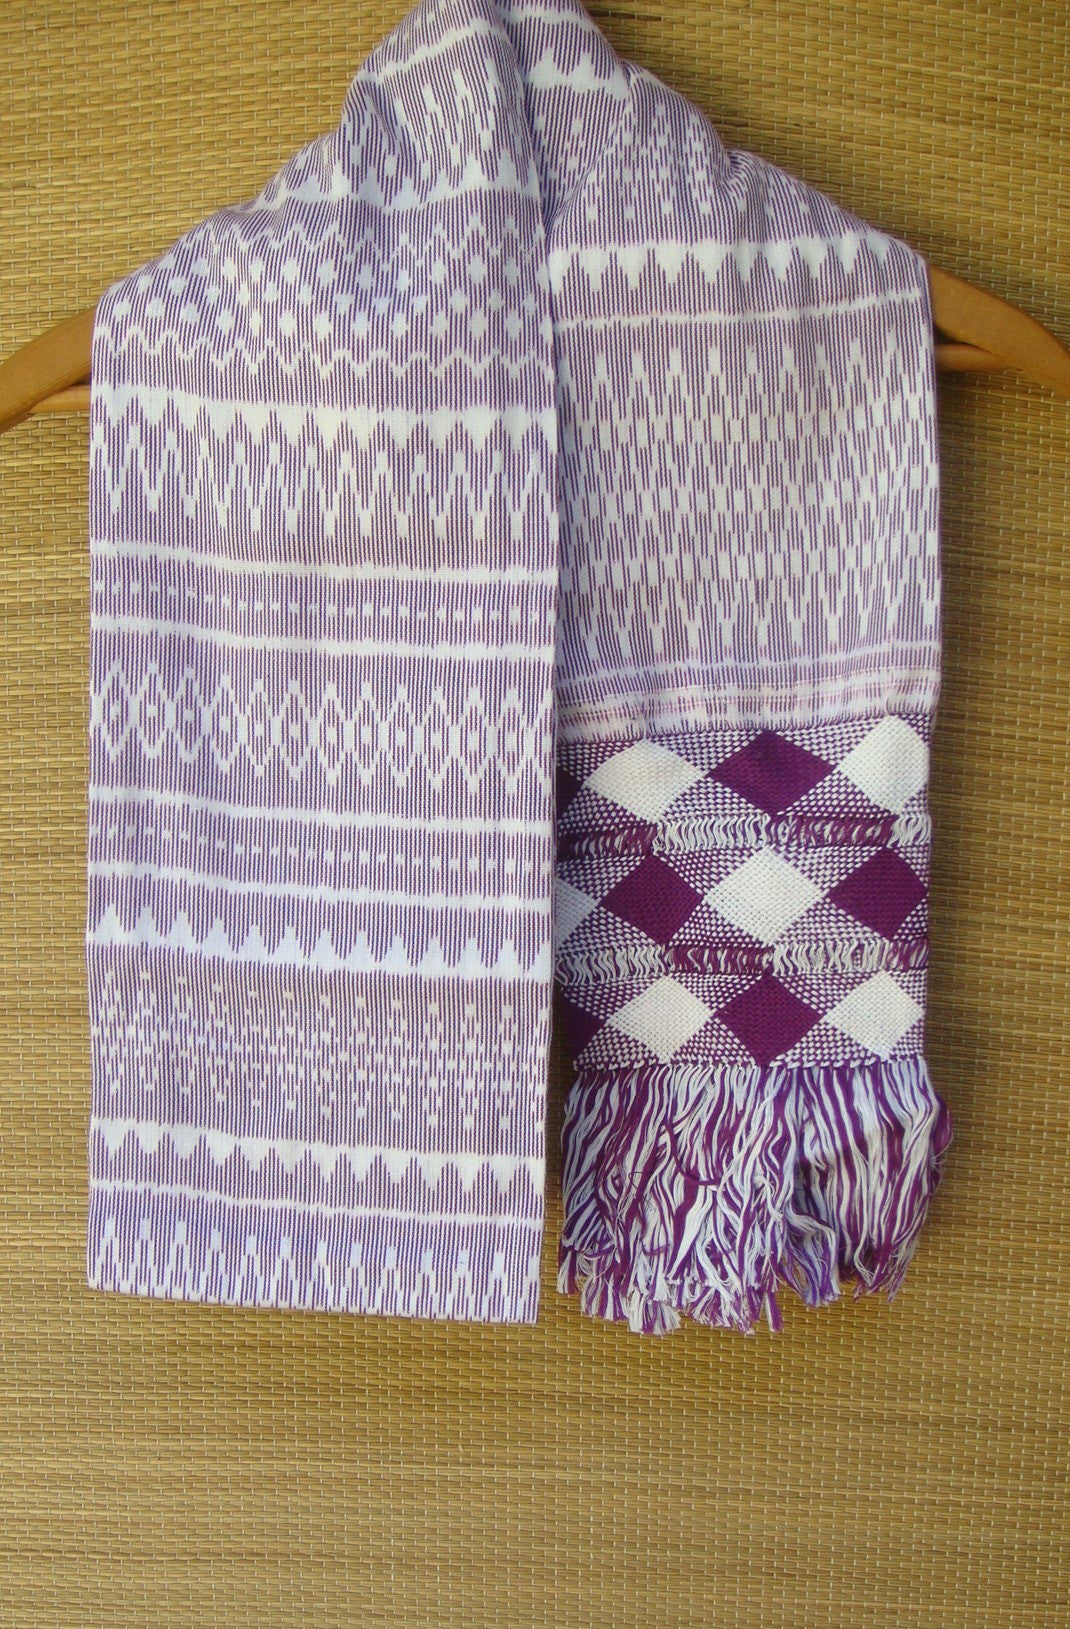 Mexican Handwoven Purple with Cream Rebozo Shawl Wrap Scarf Runner From Tenancingo